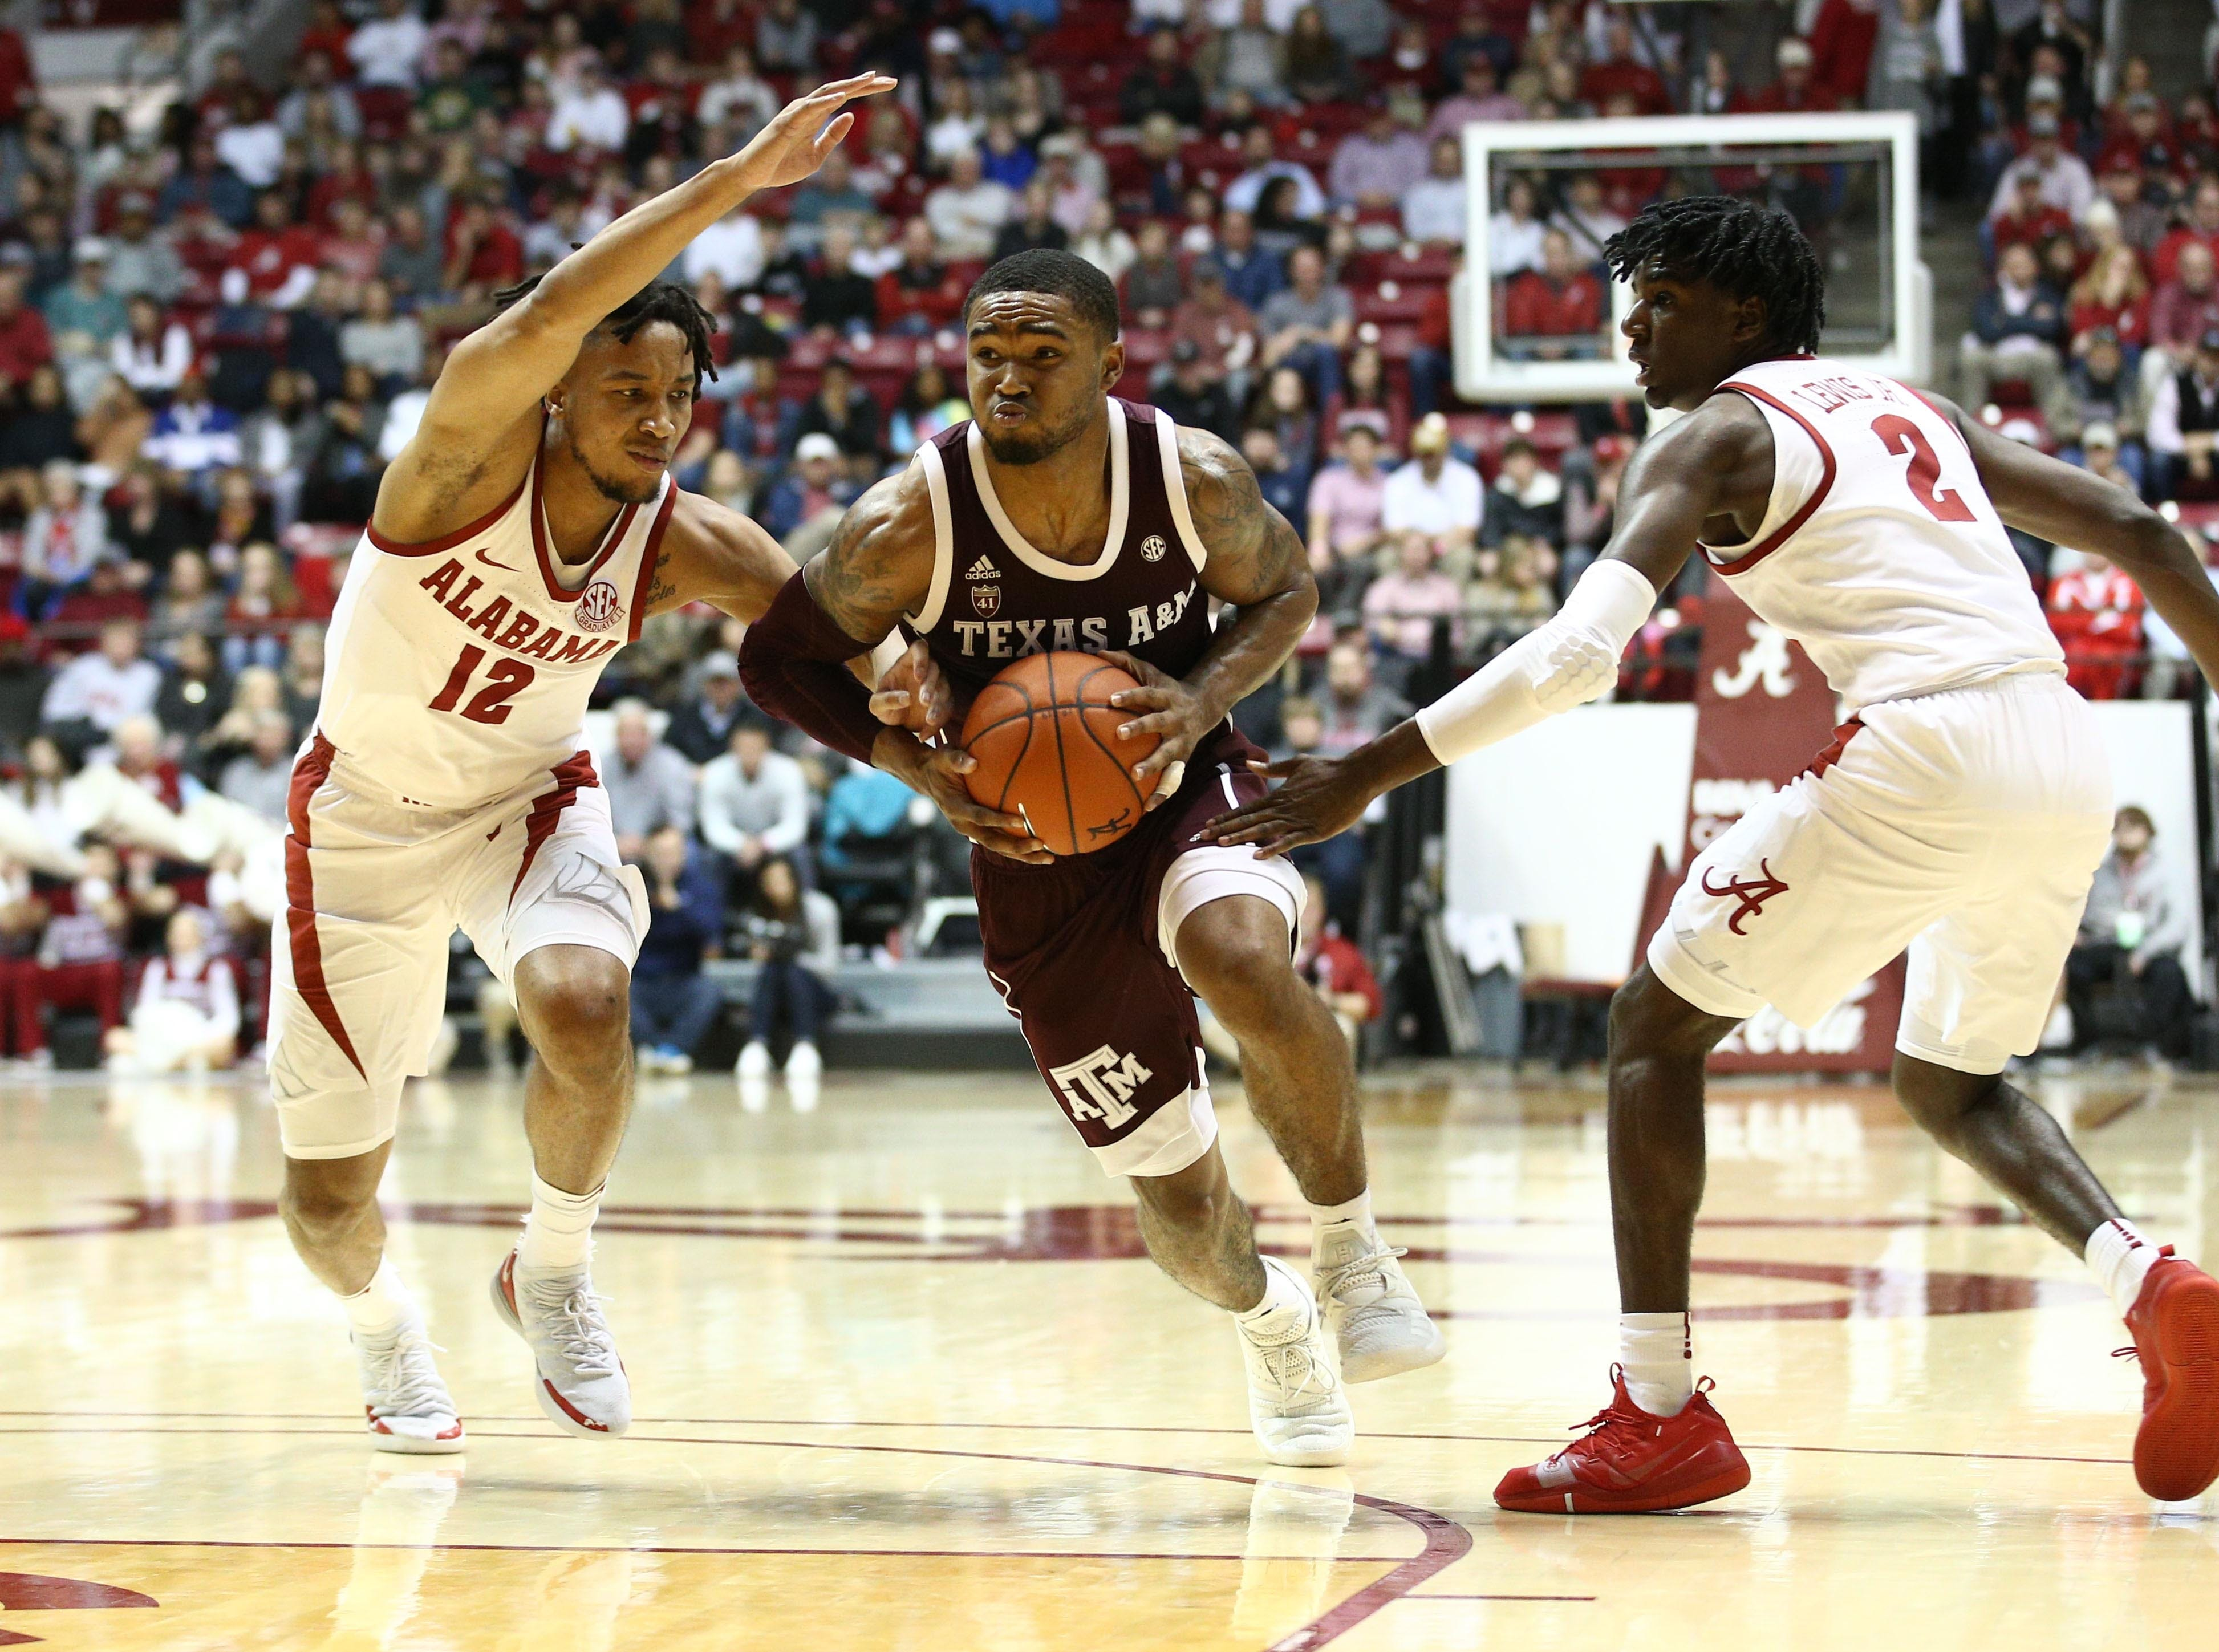 Jan 12, 2019; Tuscaloosa, AL, USA; Texas A&M Aggies guard TJ Starks (2) drives to the basket against Alabama Crimson Tide guard Dazon Ingram (12) and guard Kira Lewis Jr. (2) during the first half at Coleman Coliseum. Mandatory Credit: Marvin Gentry-USA TODAY Sports